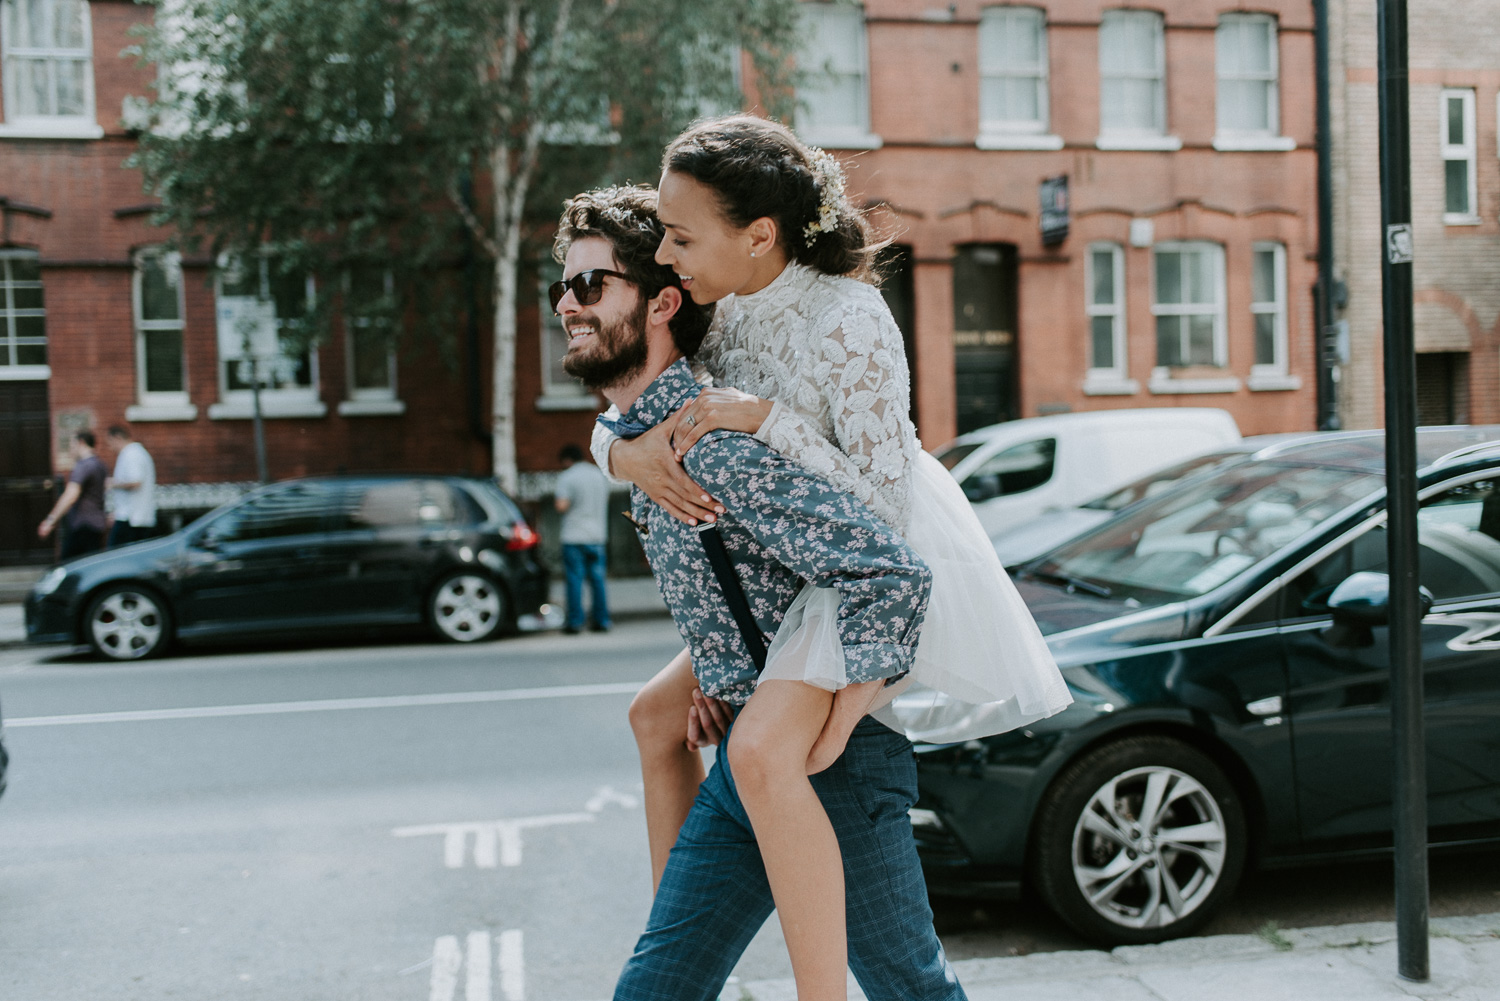 Bride and Groom portrait of a piggy back ride through East London. These two had just had an intimate wedding celebration in Shoreditch.